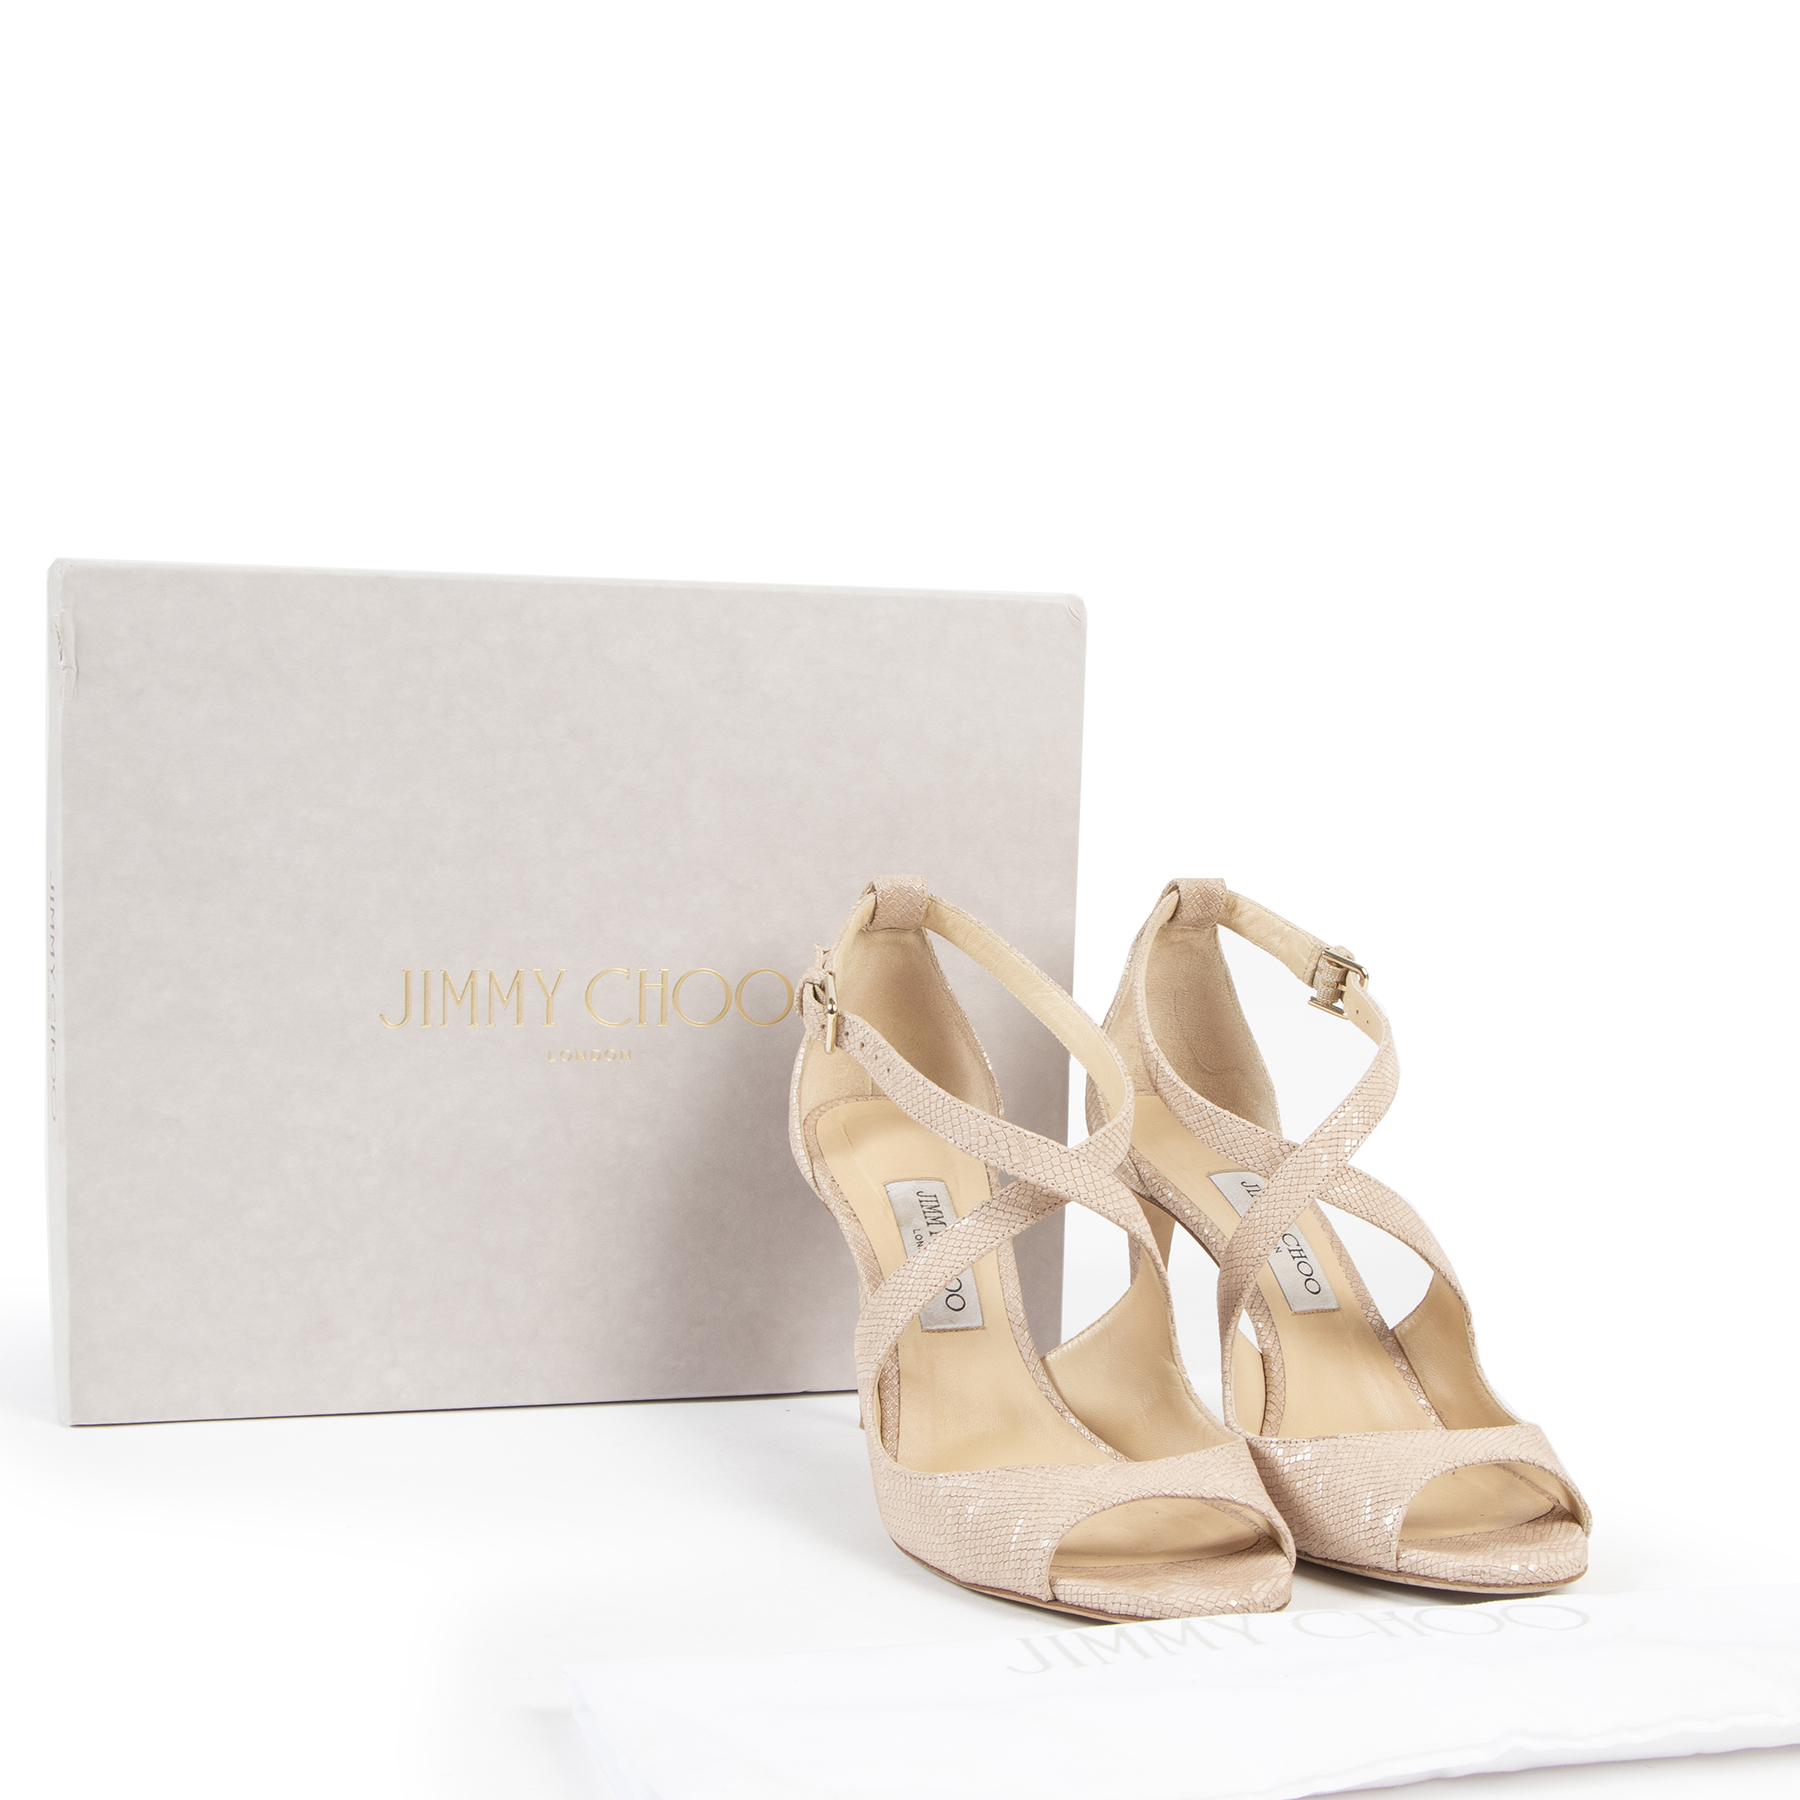 Jimmy Choo Emily Nude Lizard-Embossed Leather Heeled Sandals for the best price